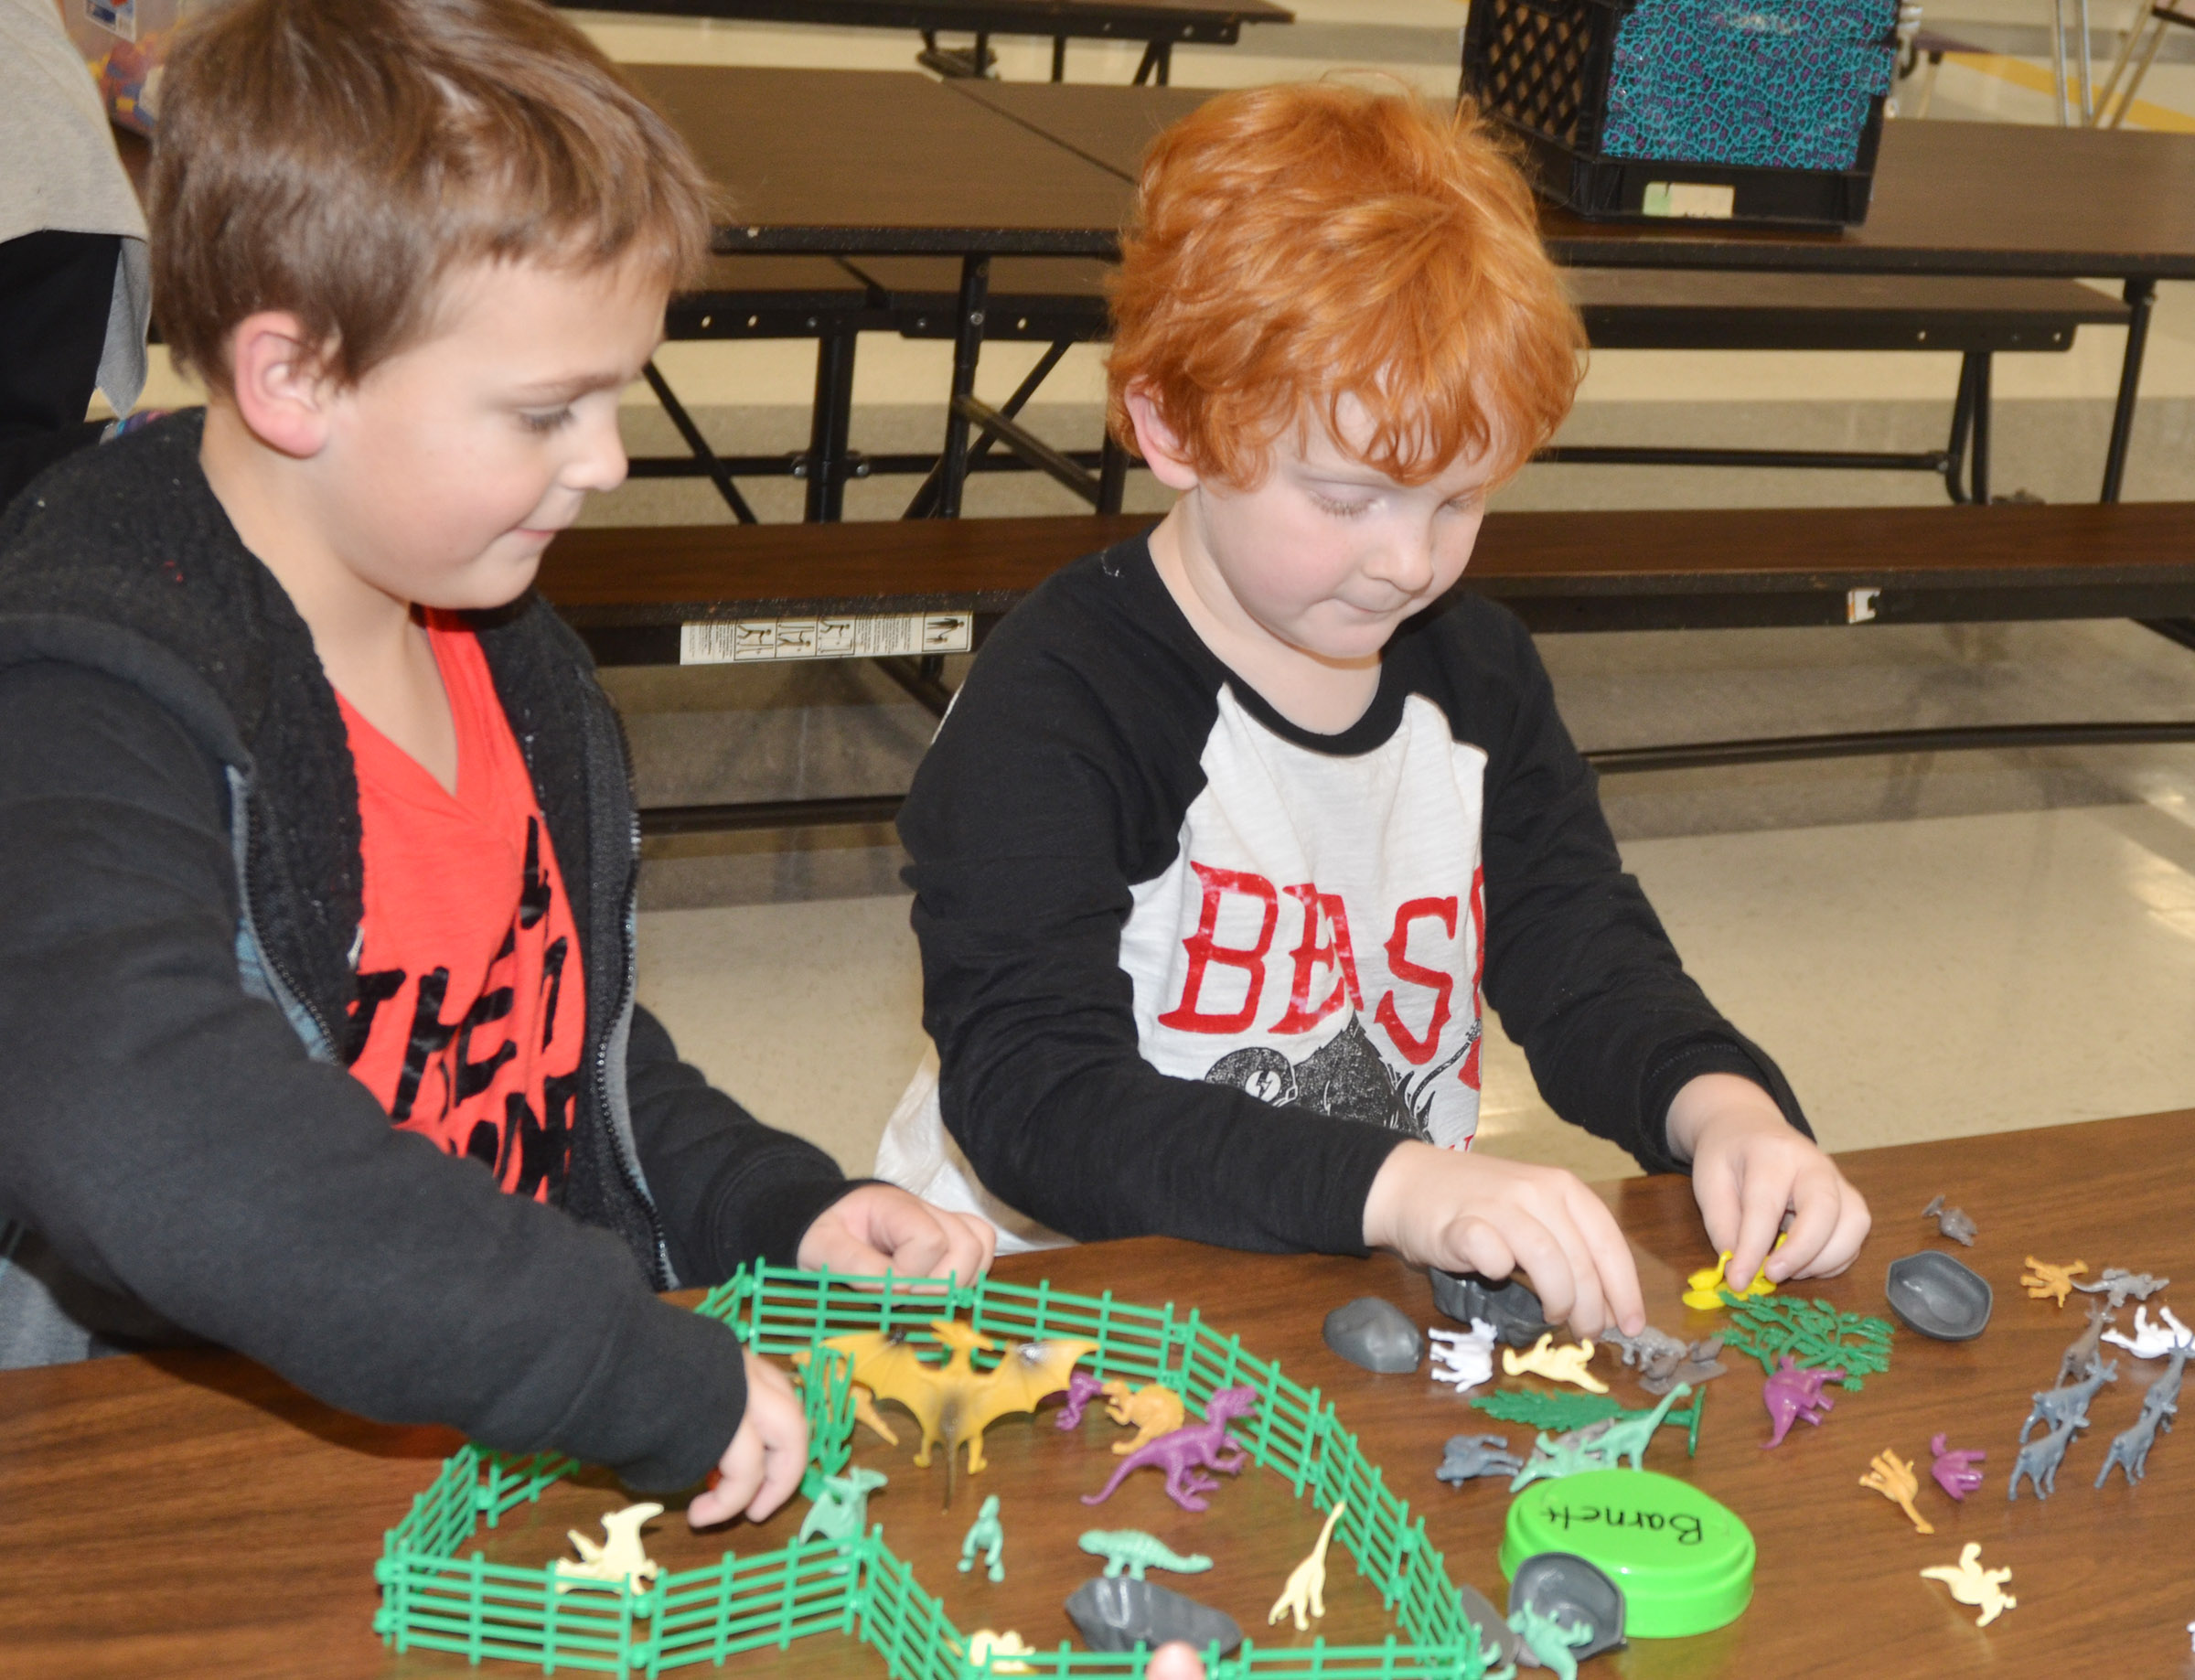 CES first-grader Brendan Martin, at left, and his brother, Gavin, a second-grader, play with dinosaurs together.